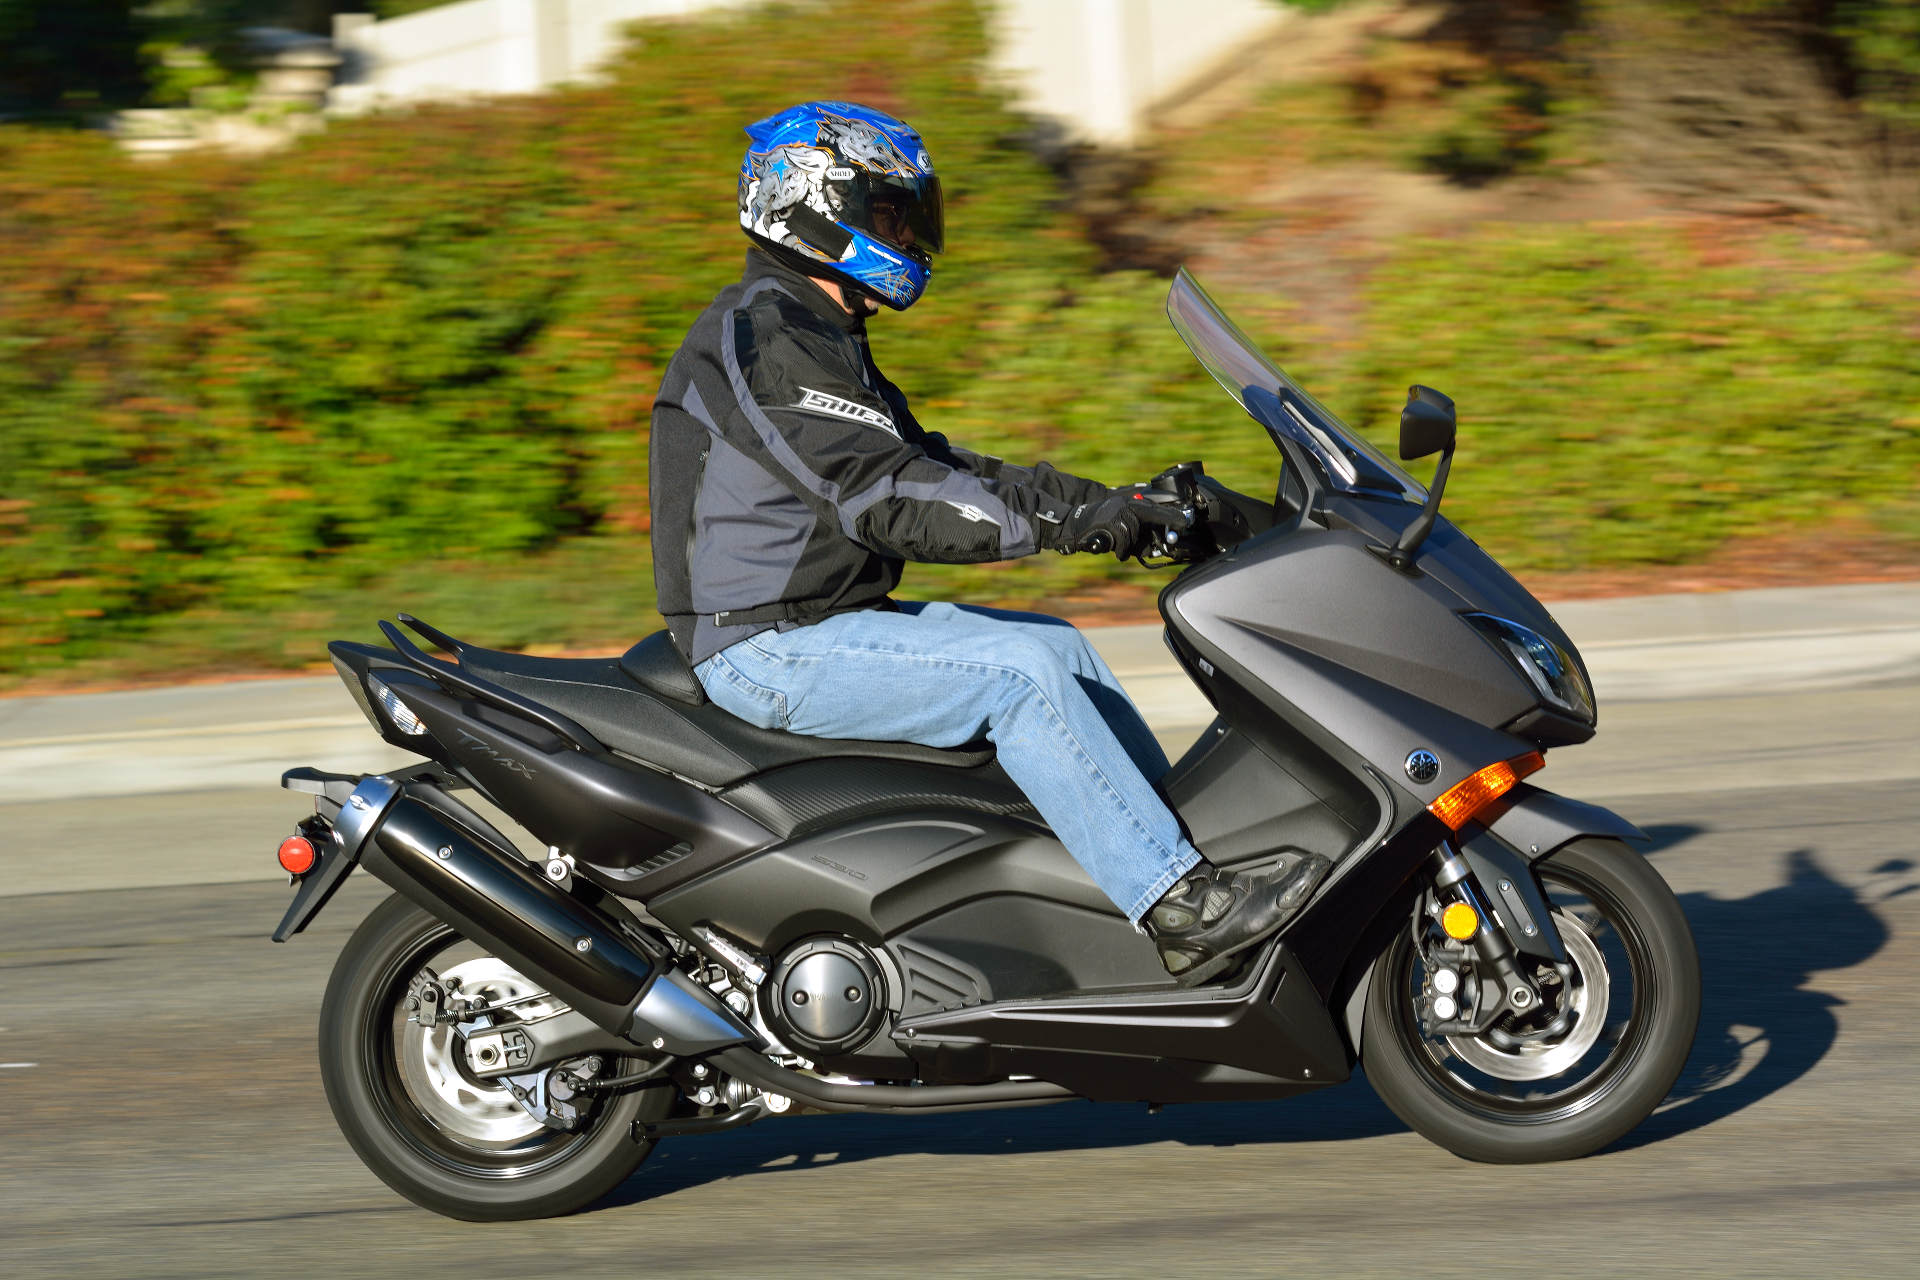 2015 Yamaha Tmax Md Ride Review 171 Motorcycledaily Com